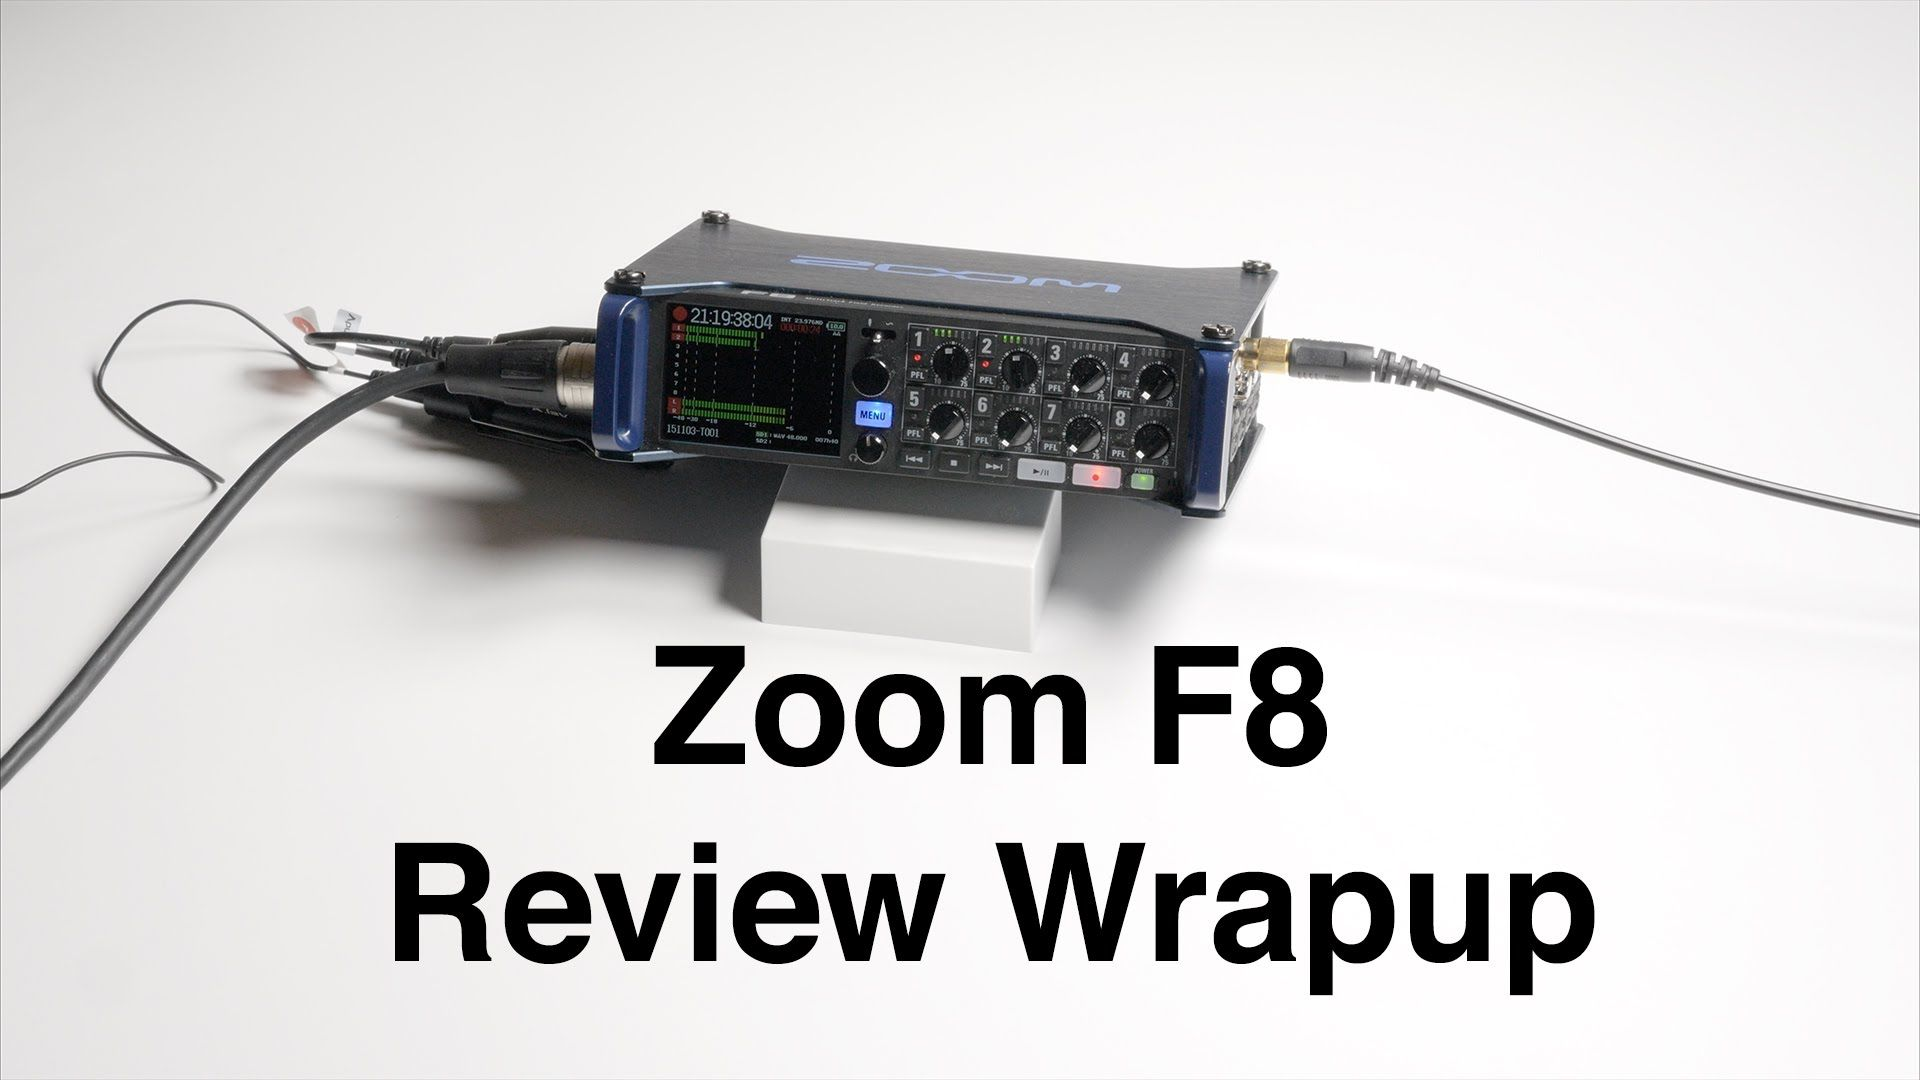 The Zoom F8 is an impressive sound recorder from a company that has been steadily marching up market with more and more impressive audio gear. Zoom populariz...